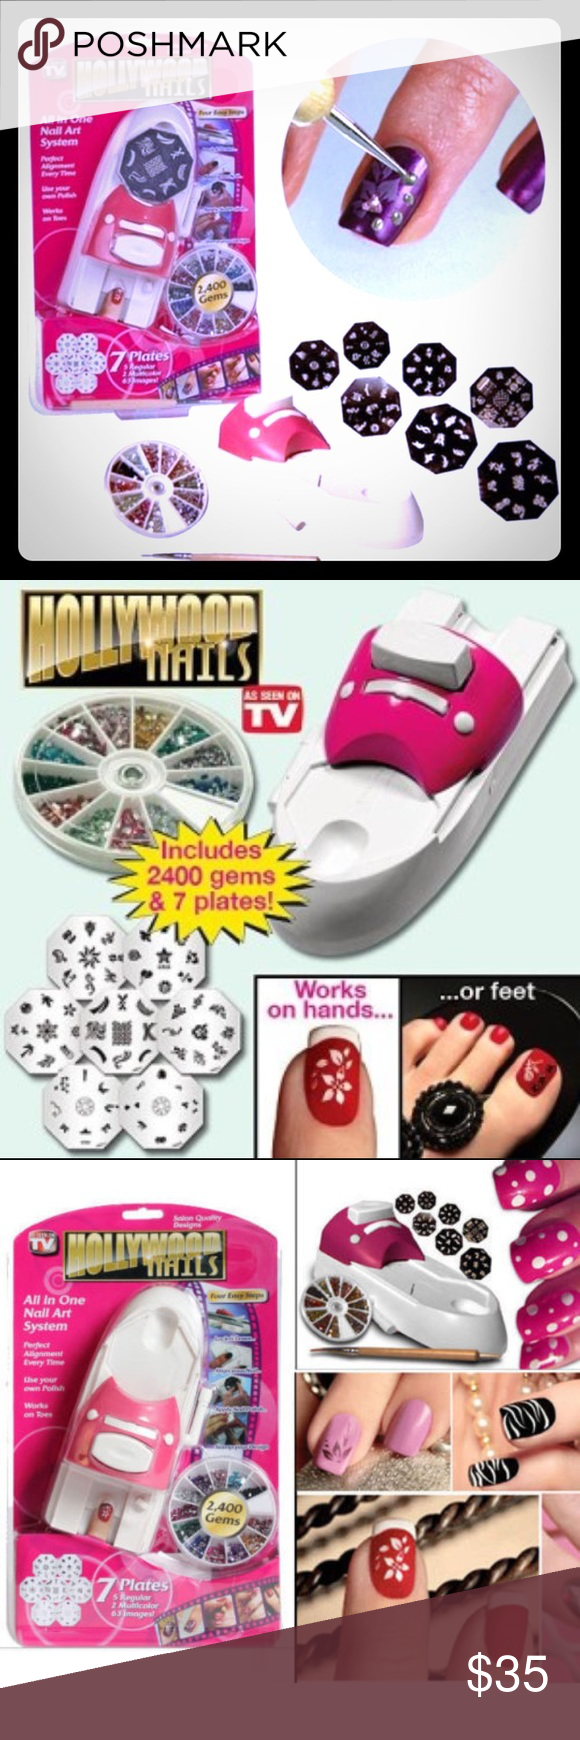 Hollywood Nails Price Drop Nwt Tool Set Drop And Fashion